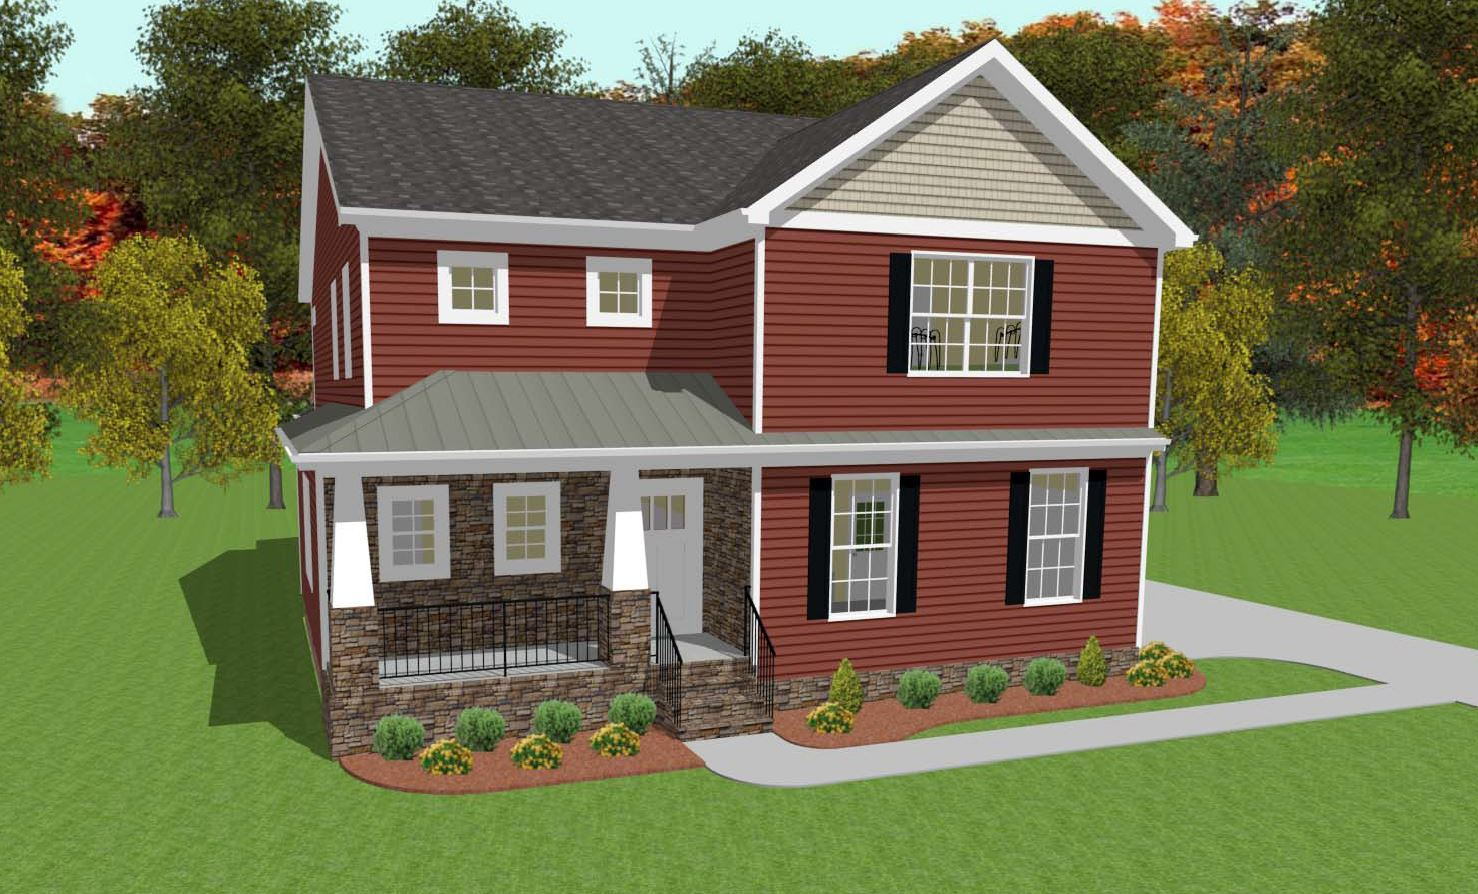 Single Family for Active at The Oaks At Fenton Mill - Amaryllis 101 Marks Pond Way Williamsburg, Virginia 23188 United States